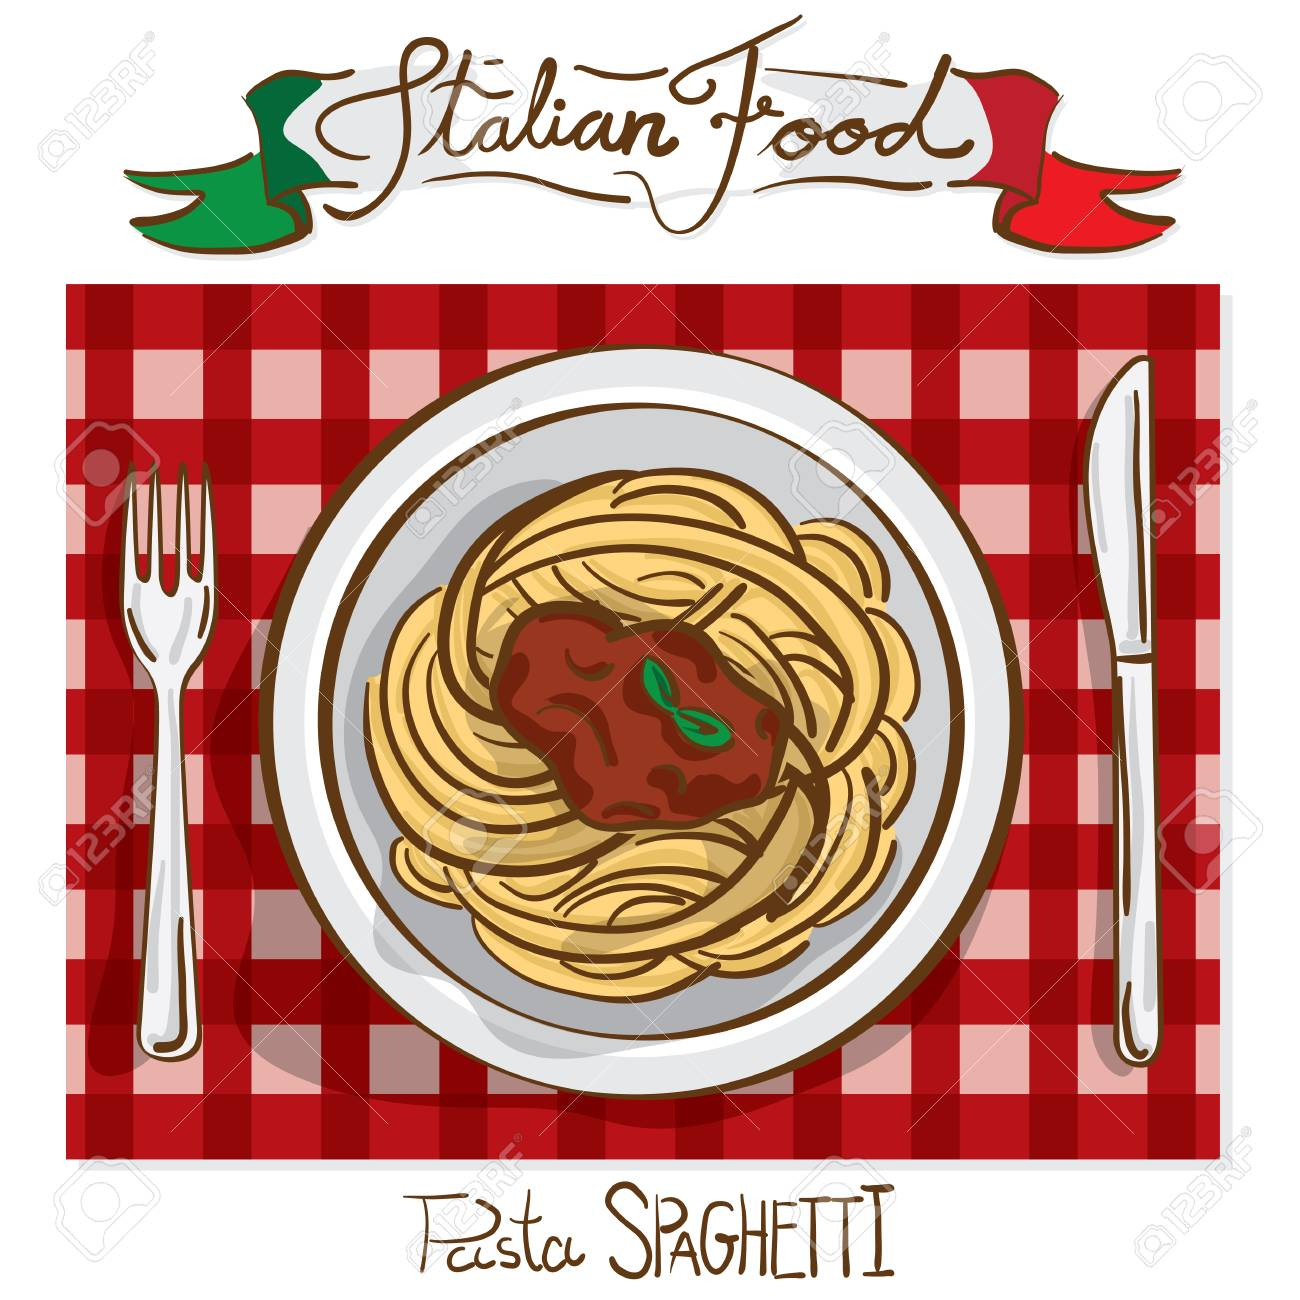 Italian Foods Spaghetti Drawing Graphic Design Illustrate Objects ...